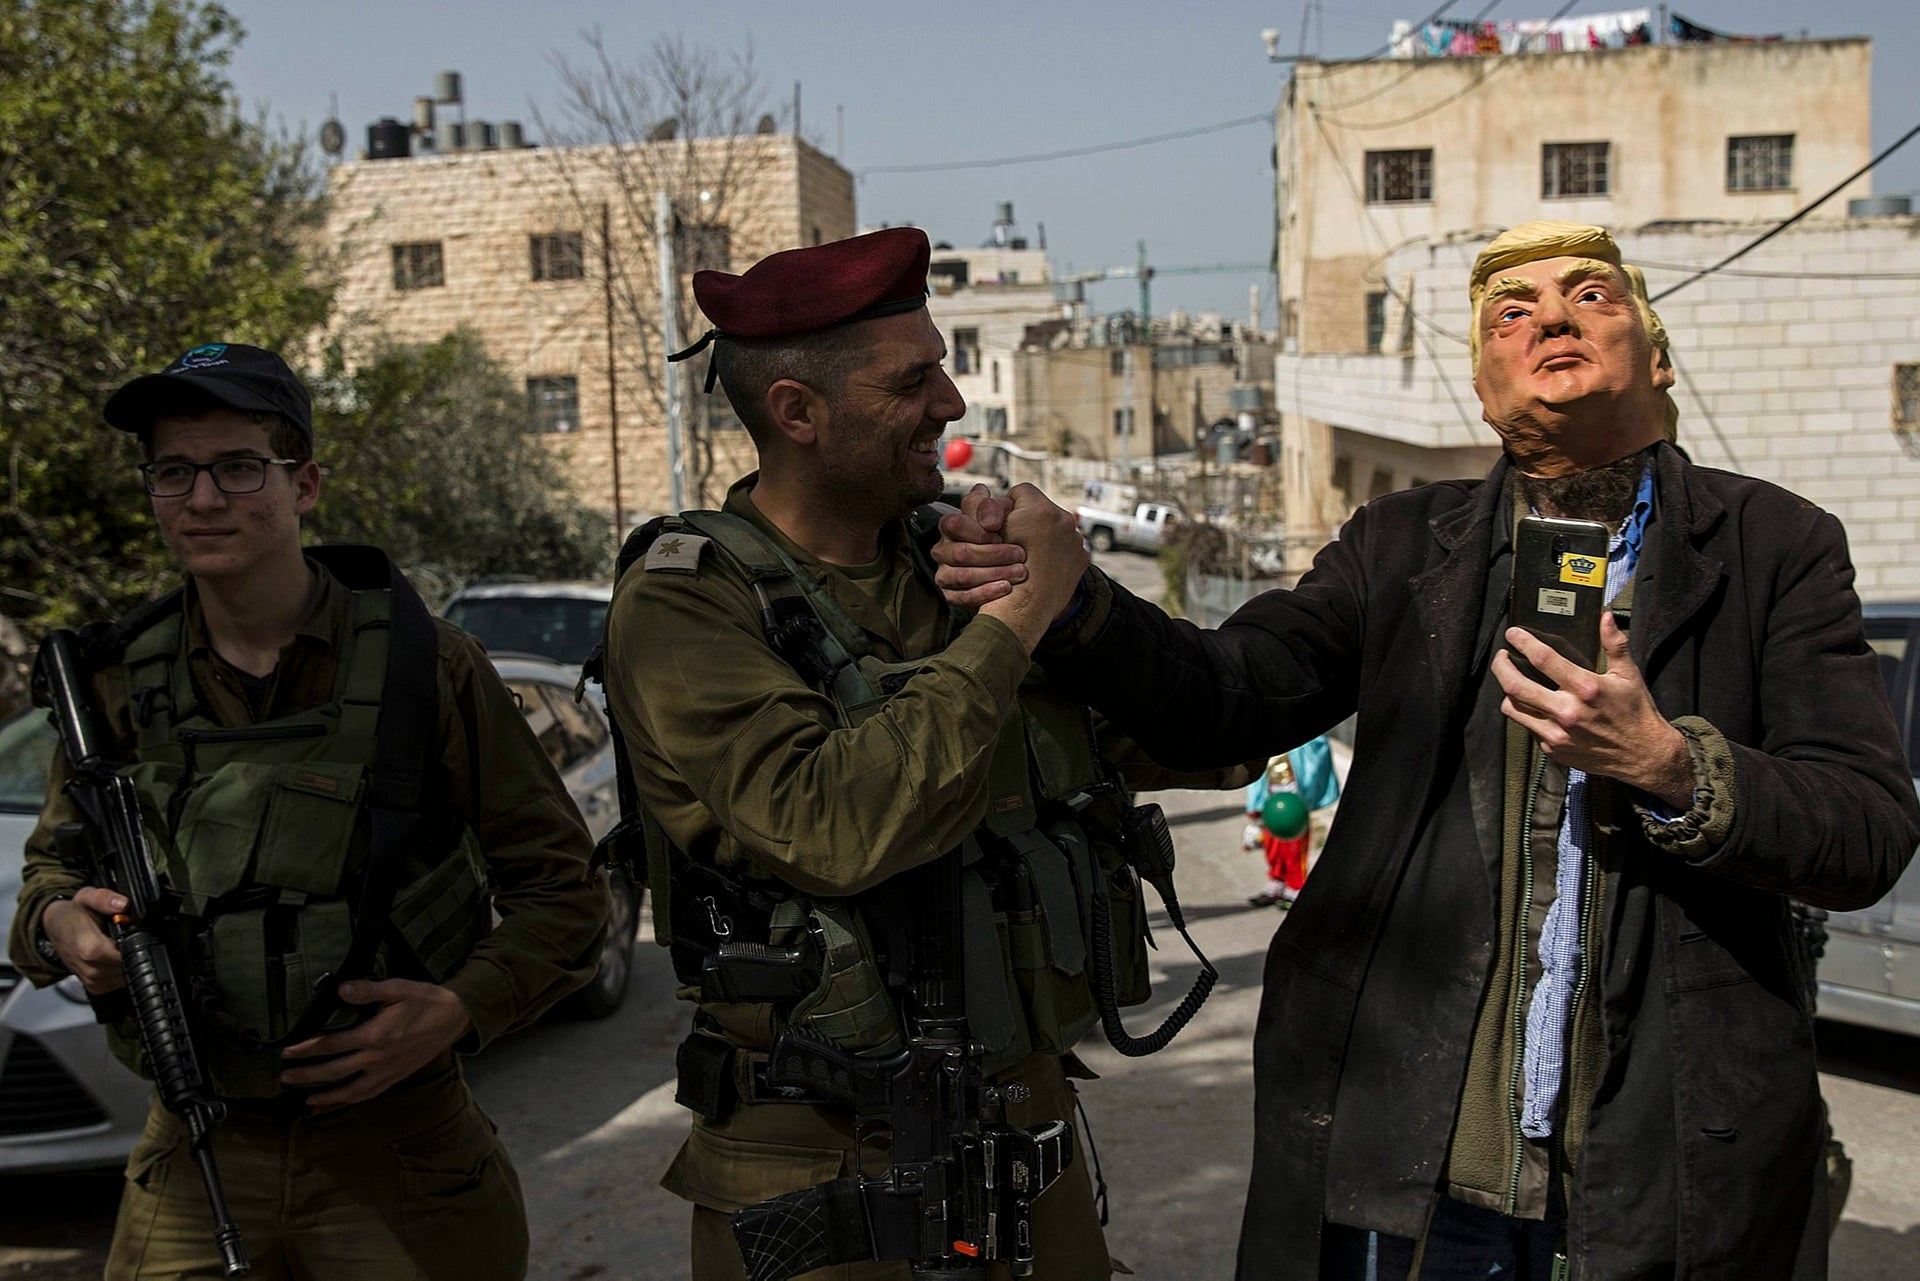 A settler wearing a Trump mask shakes hands with an Israeli soldier as he participates in the annual parade marking the Jewish holiday of Purim, in Hebron, March 1, 2018.